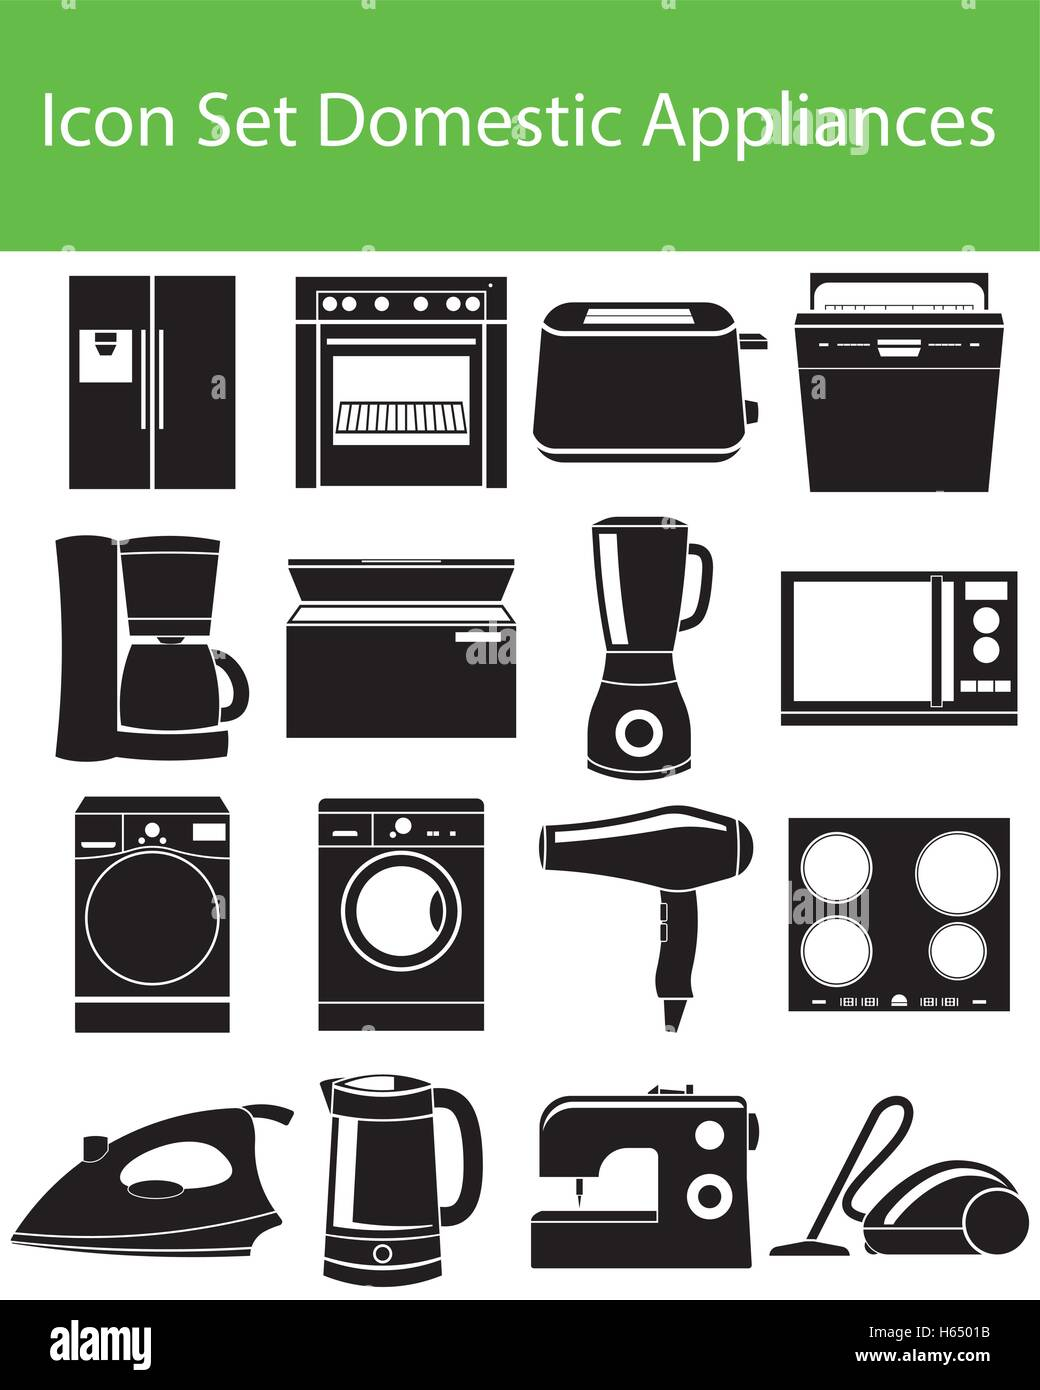 Icon Set Domestic Appliances I with 16 icons for the creative use in graphic design - Stock Image